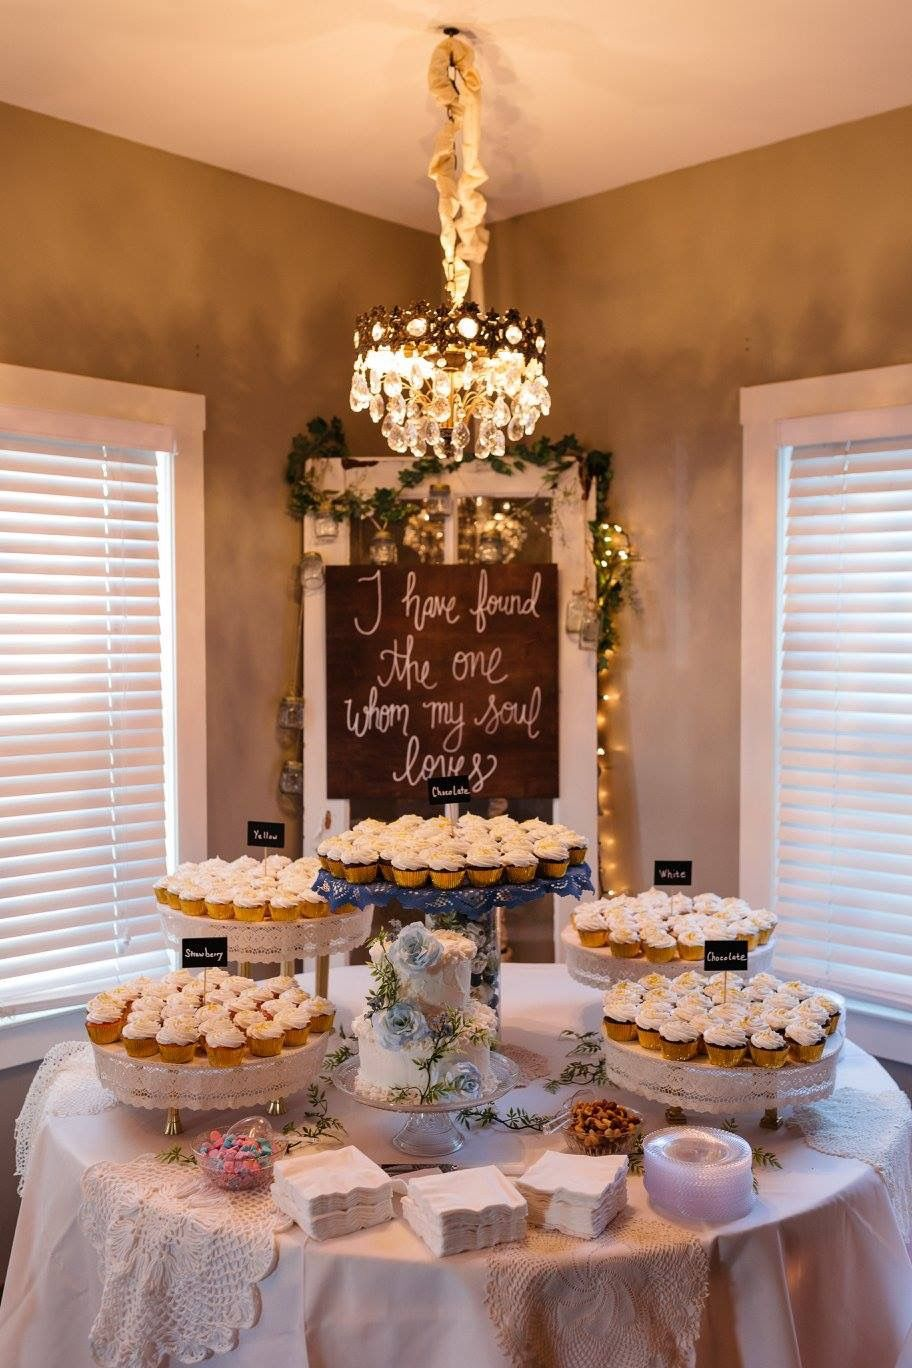 Wedding Cupcake Display I Have Found The One Whom My Soul Loves